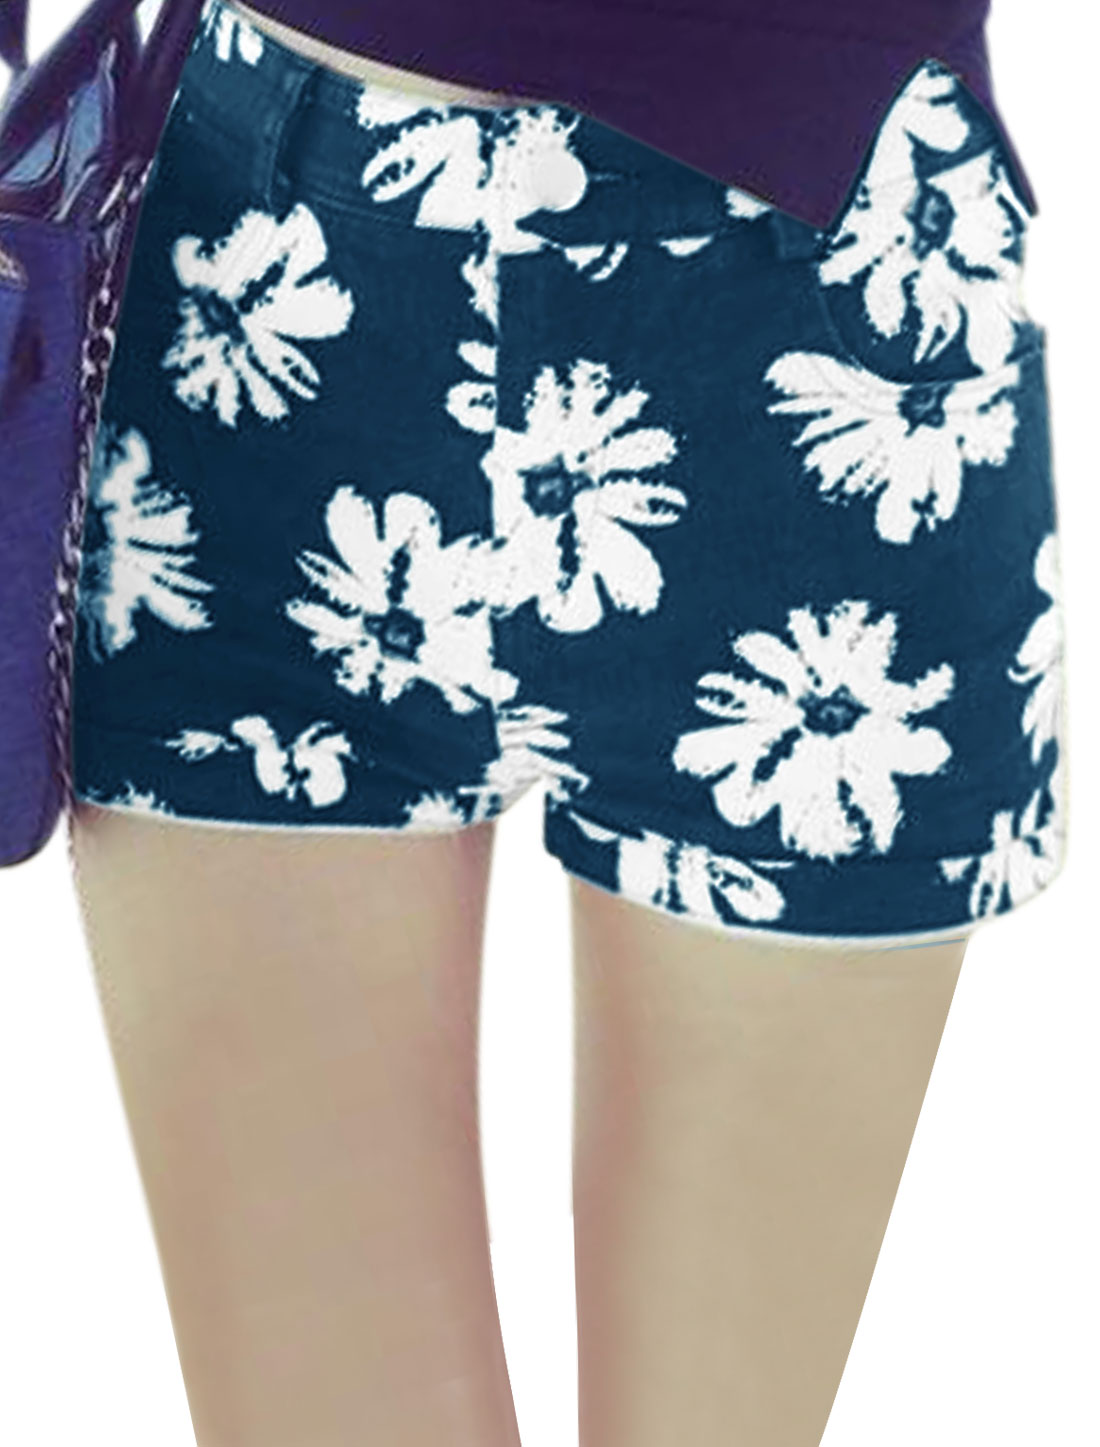 Lady Belt Loop Zip Fly Floral Prints Pockets Design Casual Shorts Dark Blue S